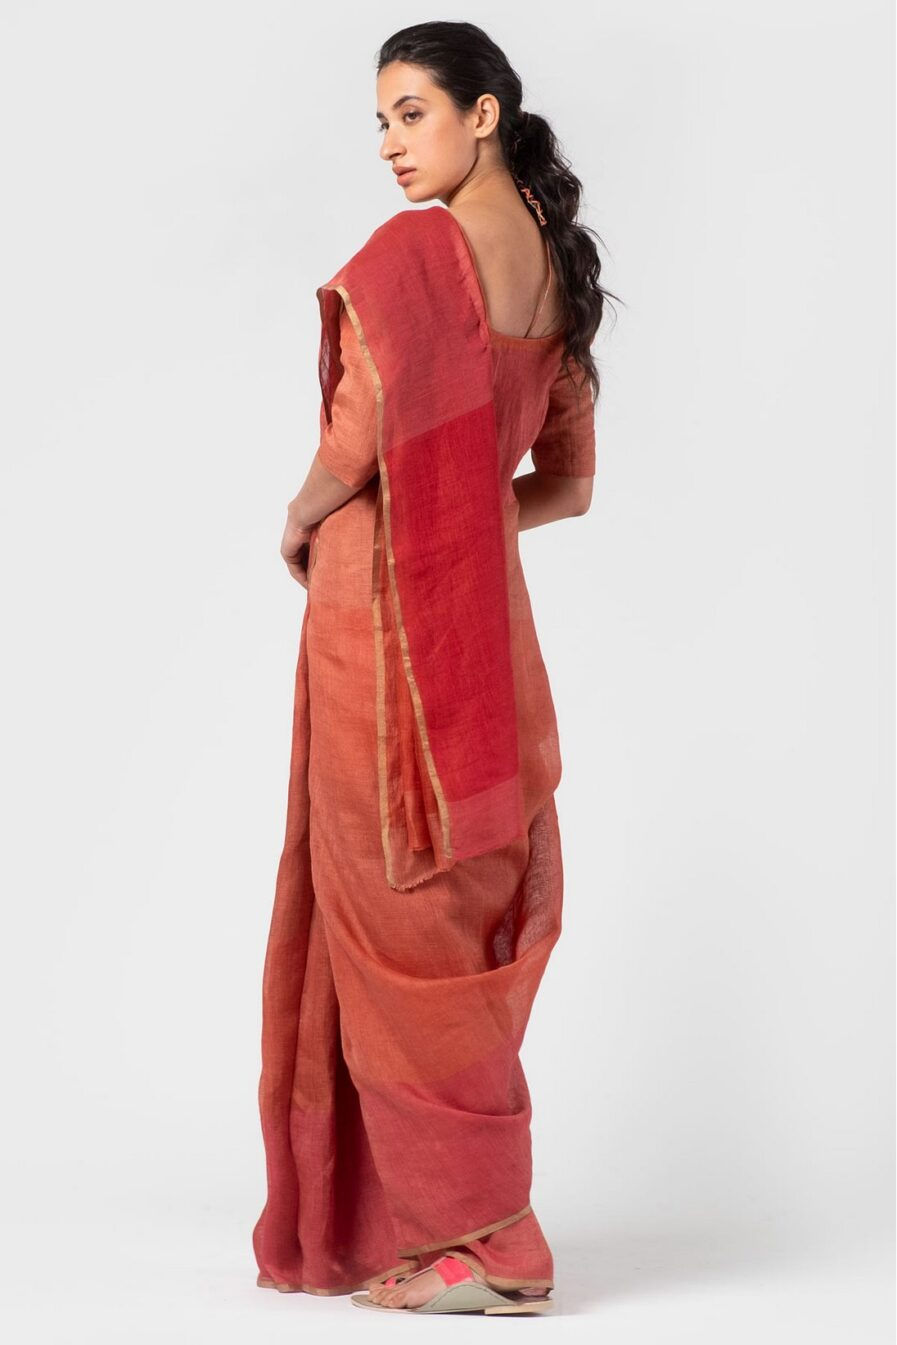 Anavila Graded coral summer sari